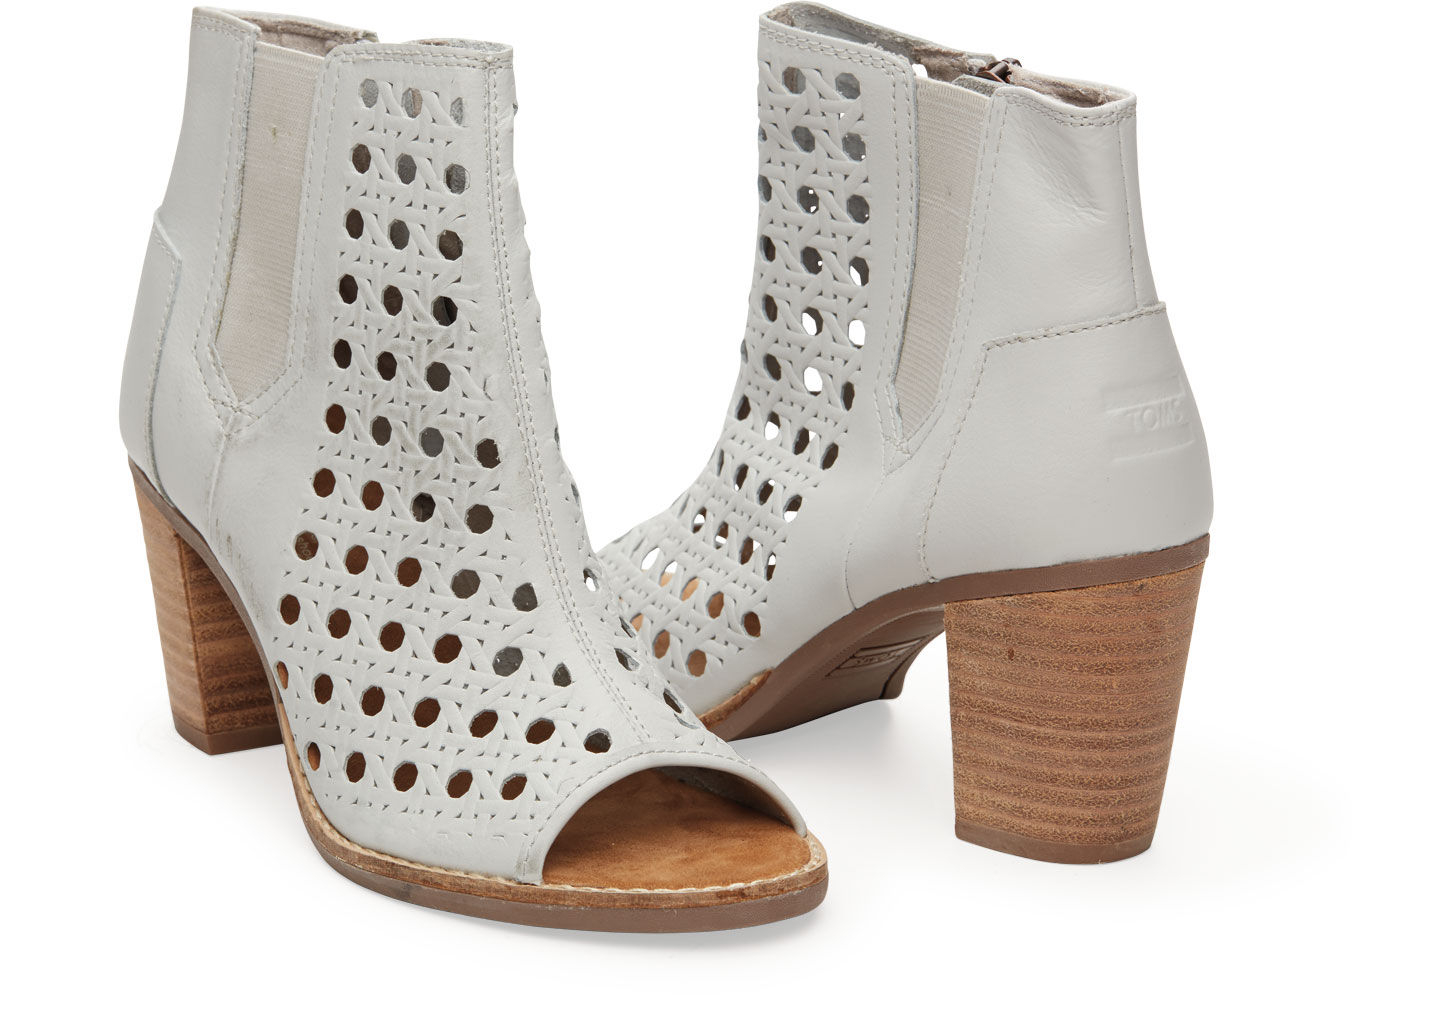 0bdf19d45df Lyst - TOMS Leather Basket Weave Womens Majorca Peep Toe Bootie in White